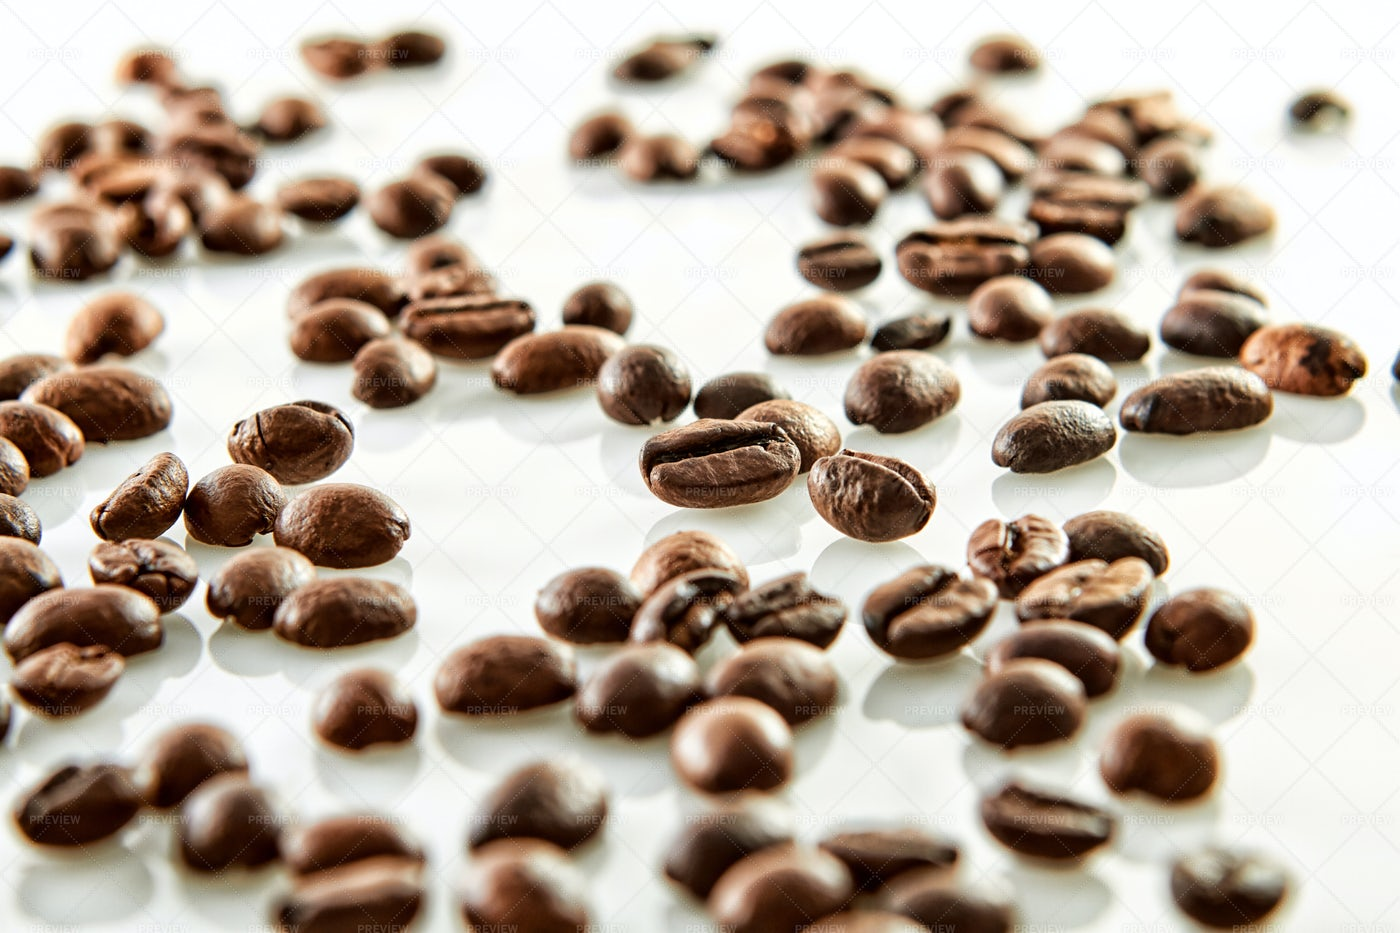 Scattered Coffee Beans: Stock Photos